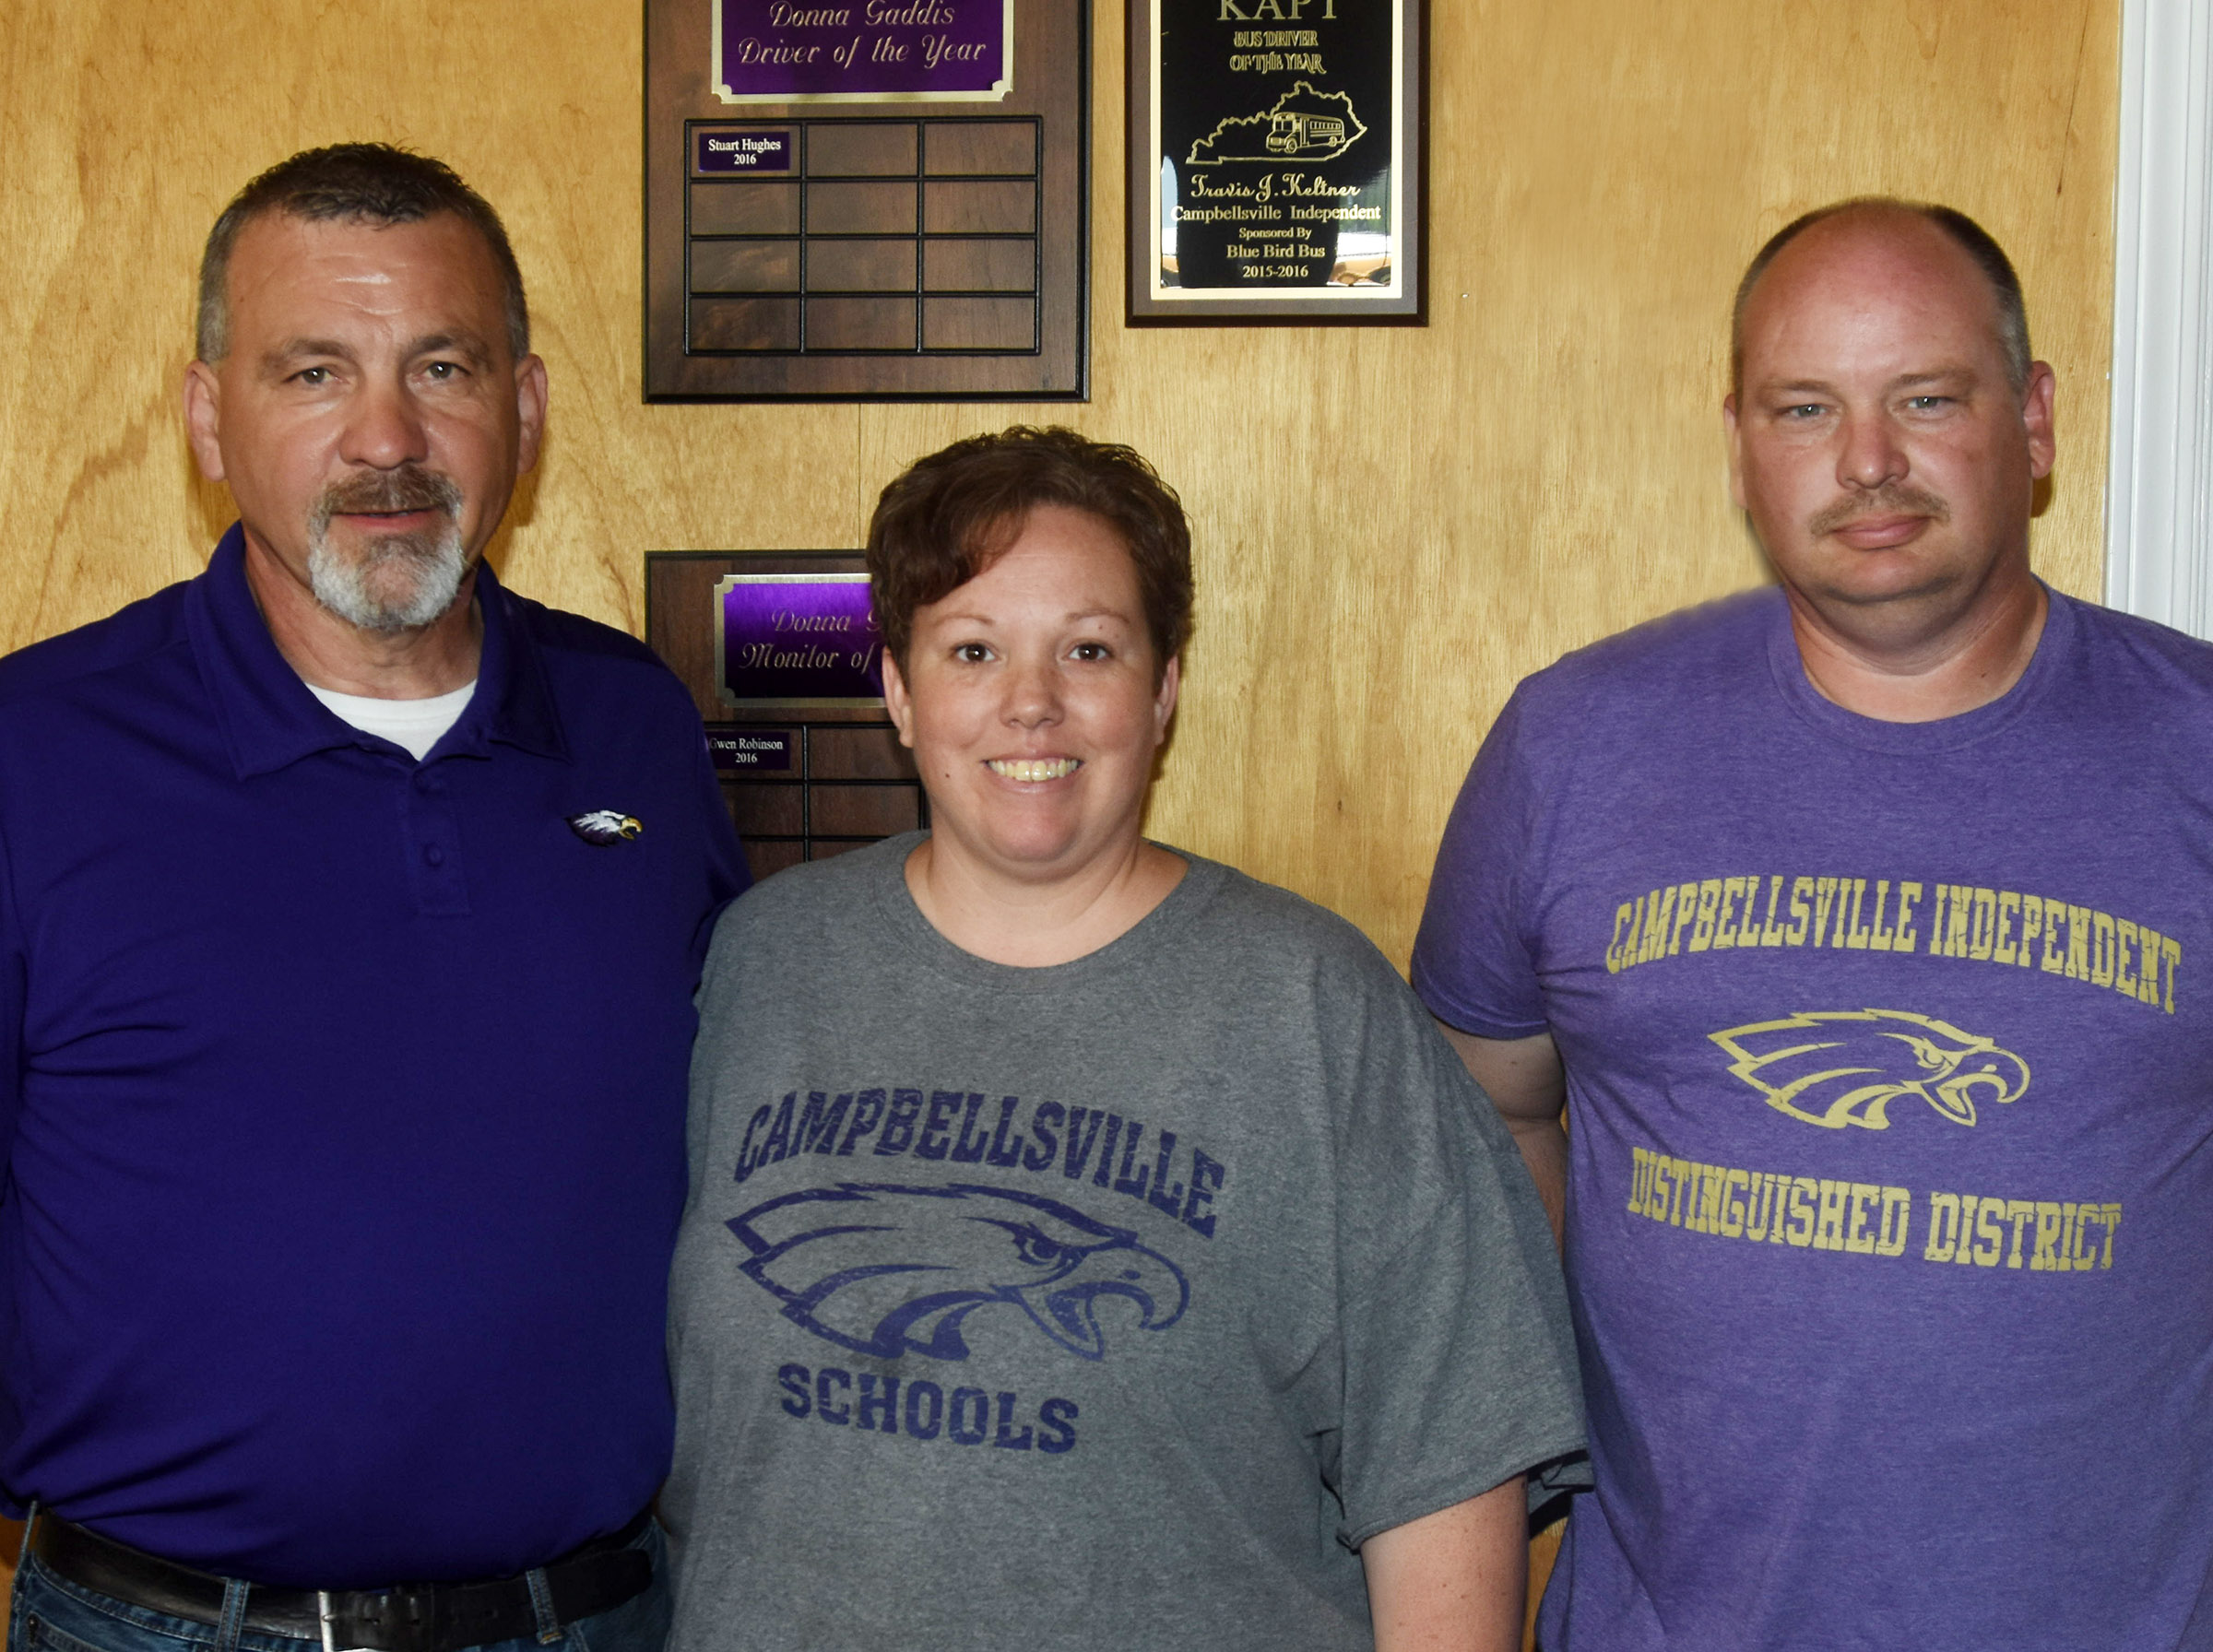 Campbellsville Independent Schools Transportation Director Tim Tungate, at left, recently honored his top bus driver and monitor. B.J. Perkins, center, received the Donna Gaddis Bus Monitor of the Year award. Stuart Hughes received the Donna Gaddis Driver of the Year award.